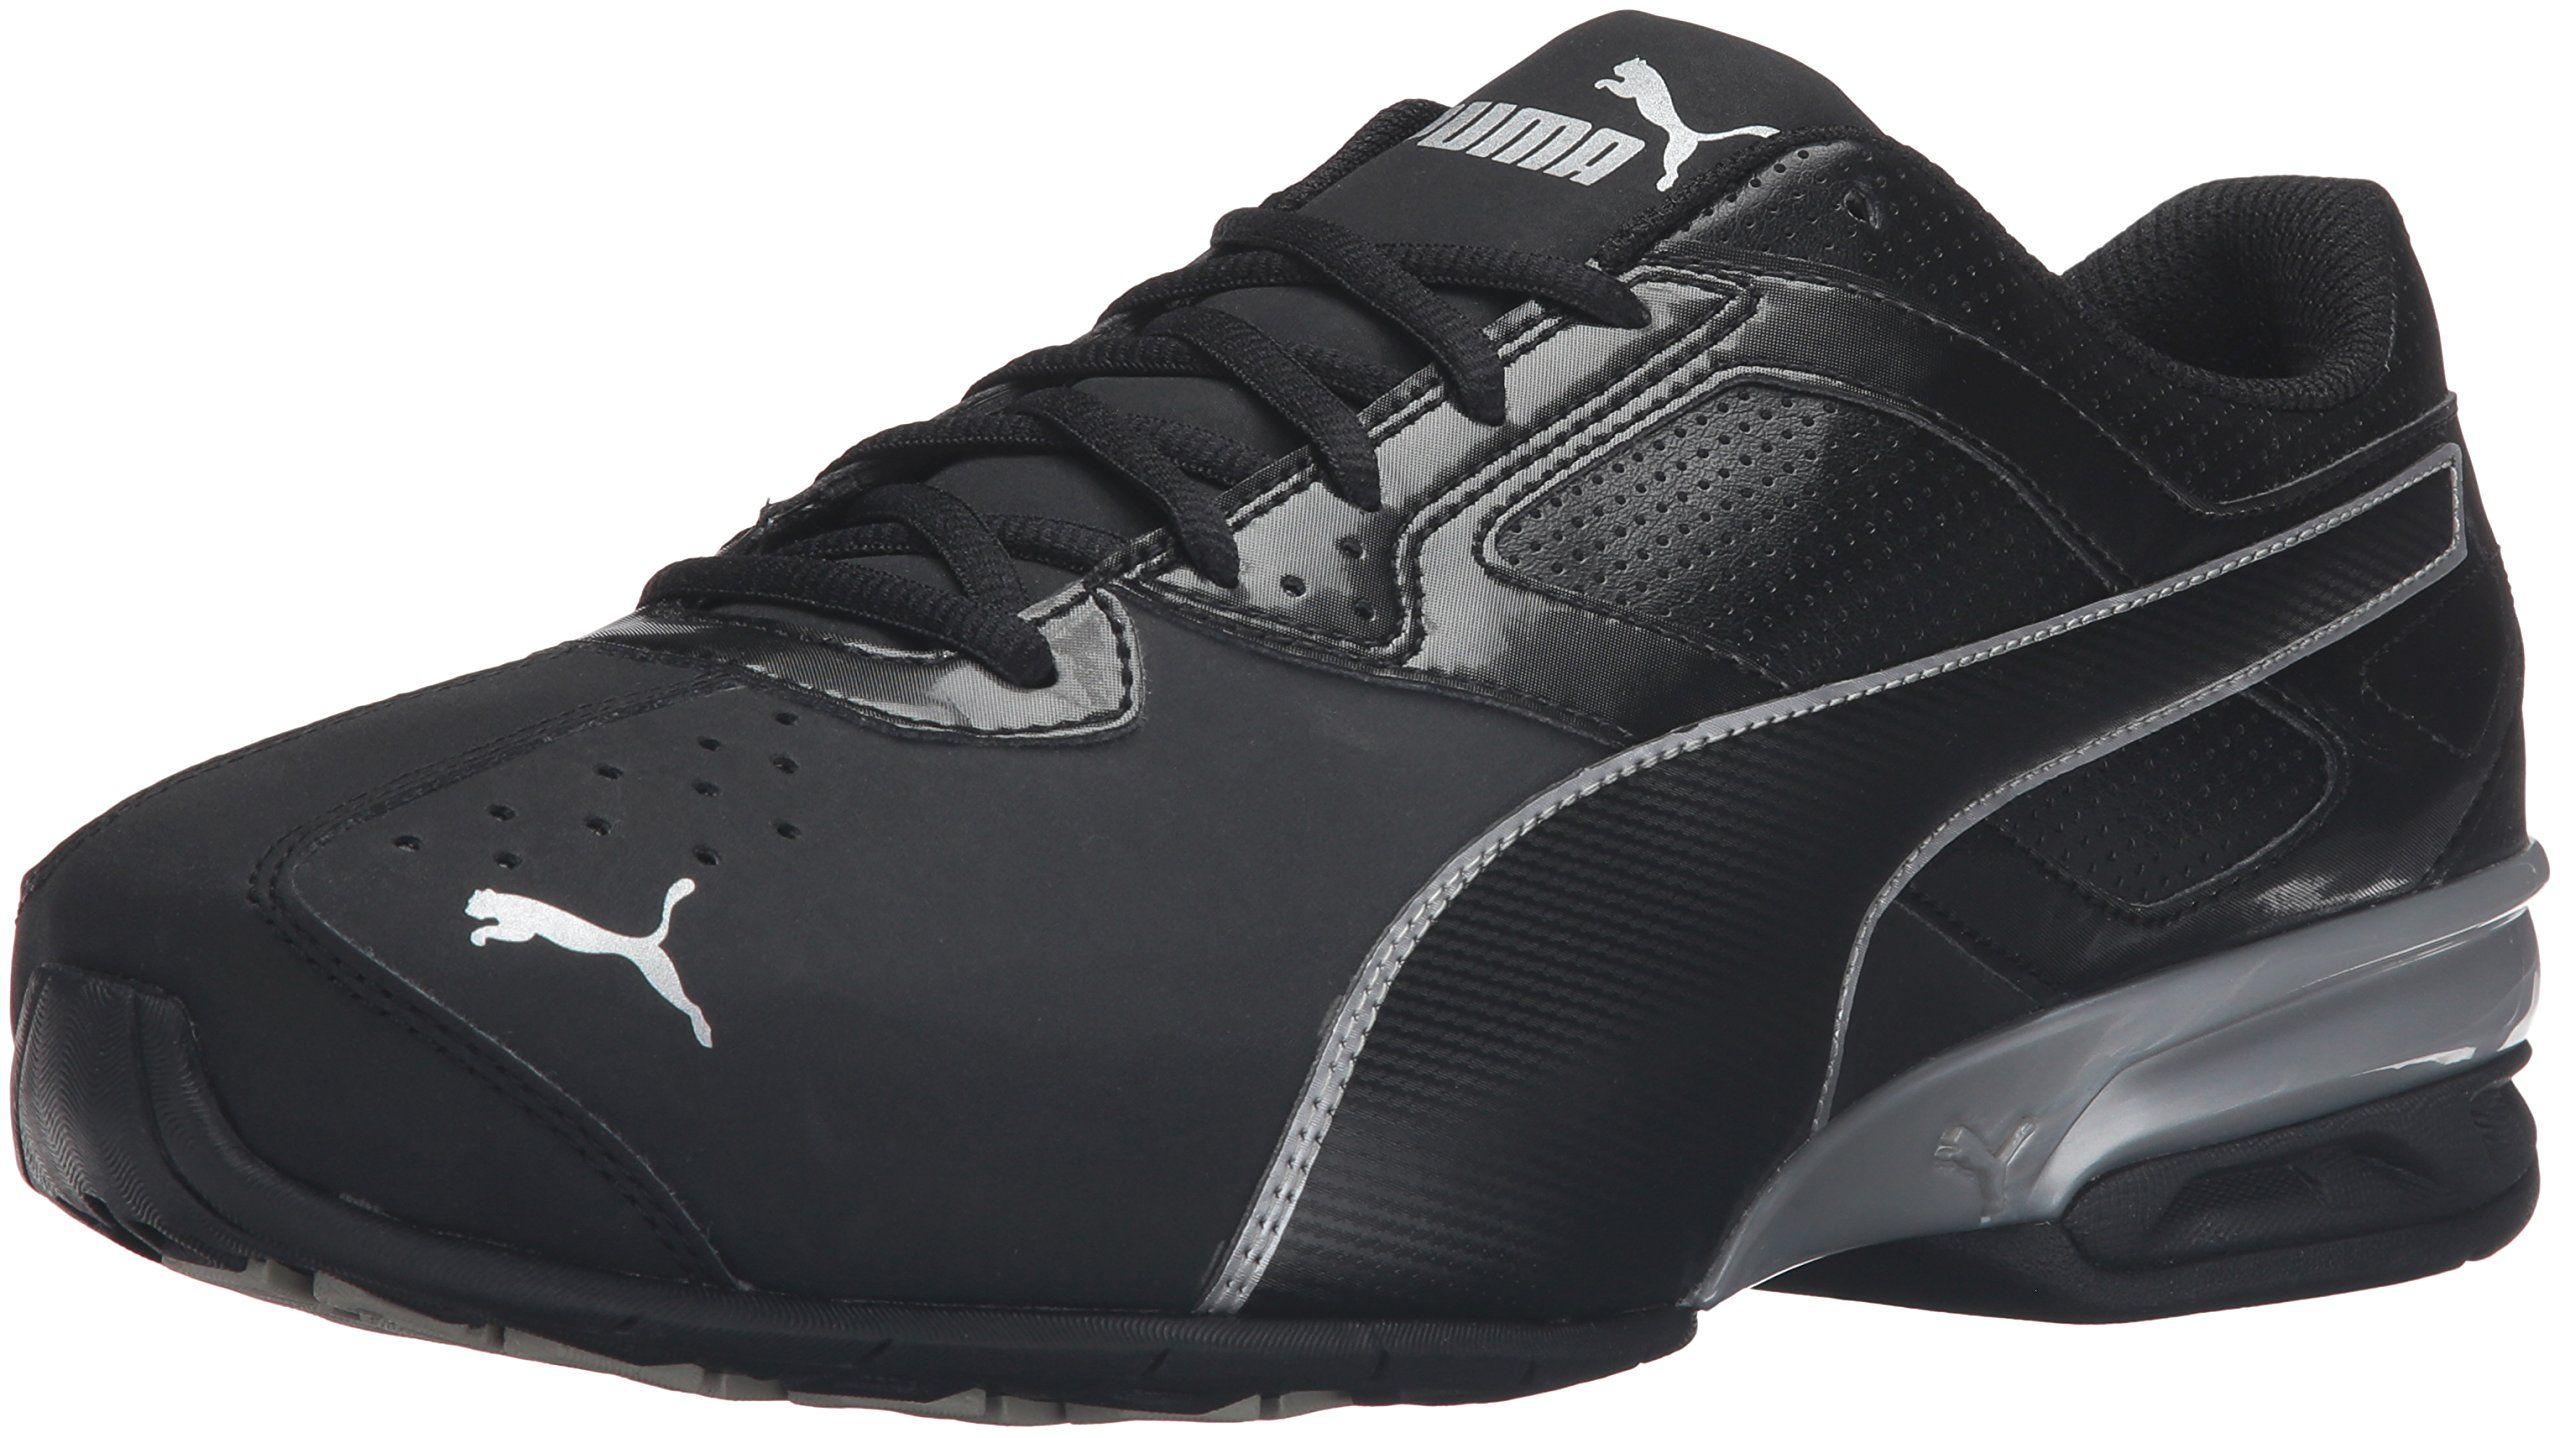 bb0603d85d2 PUMA Mens Tazon 6 FM Puma Black  Puma Silver Running Shoe 13 2E US --  Details can be found by clicking on the image. (This is an affiliate link)